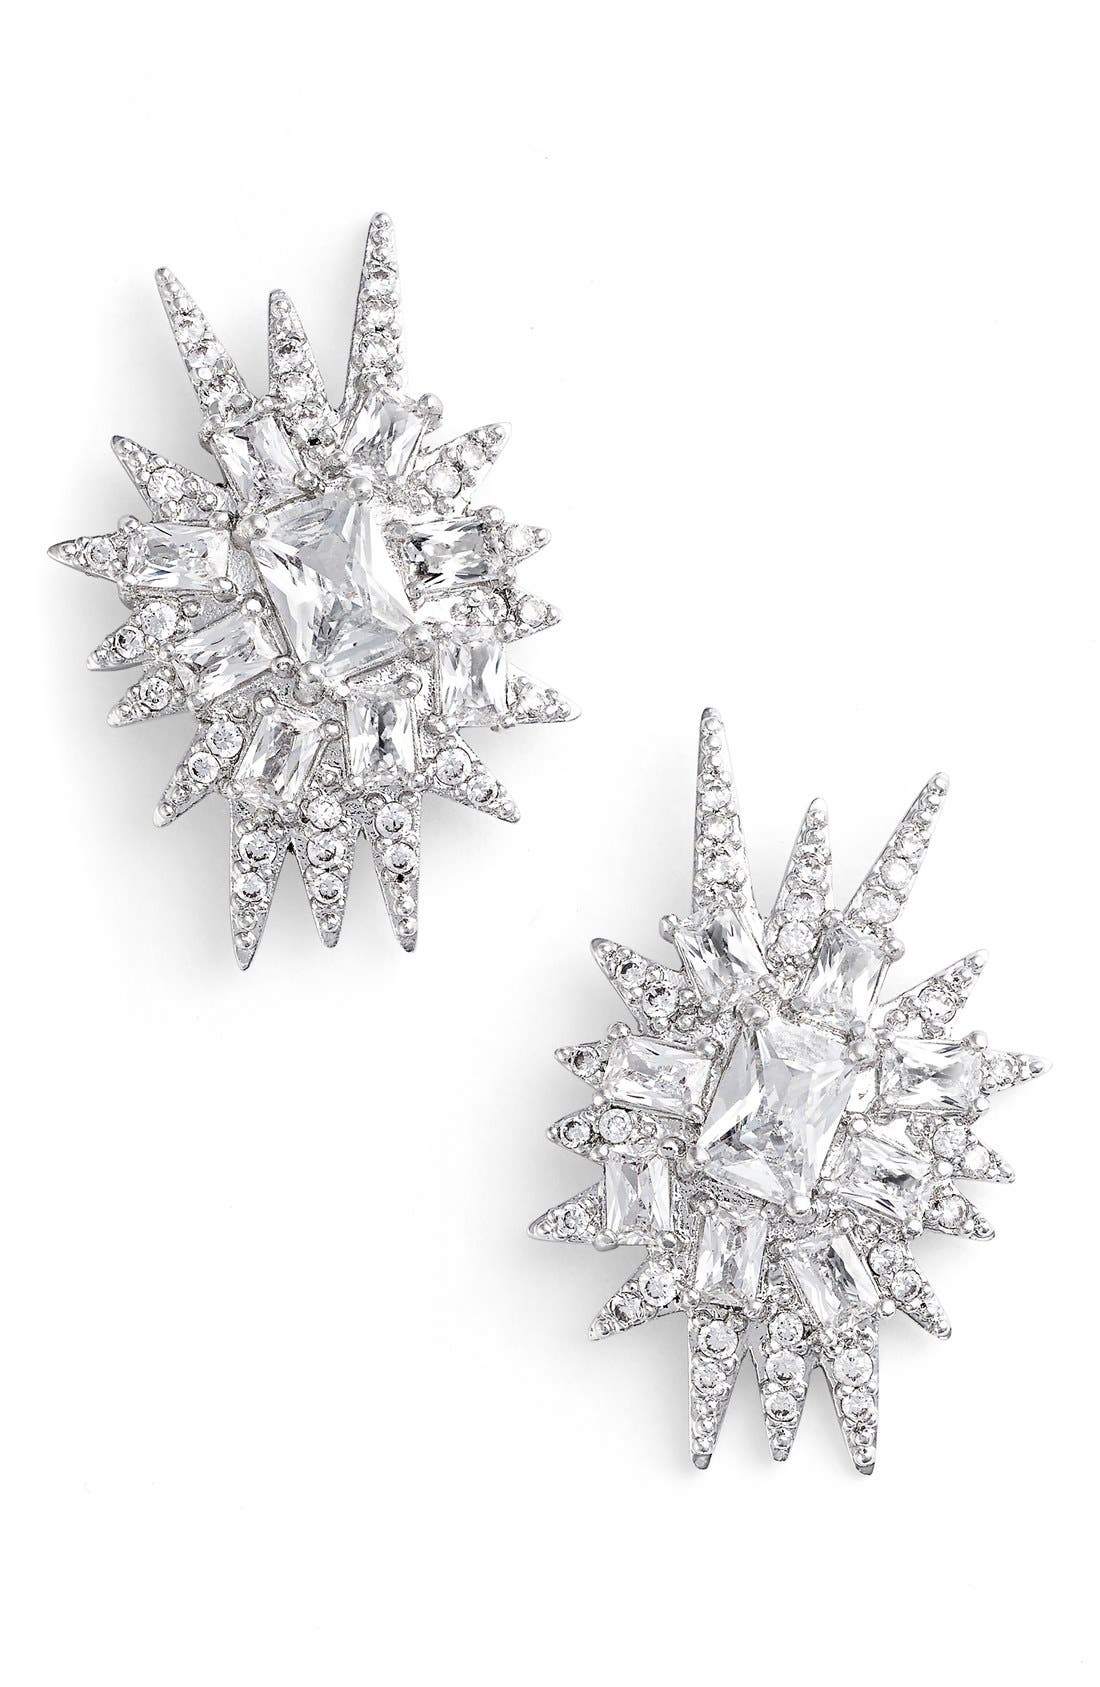 Main Image - CZ by Kenneth Jay Lane 'Explosion' Cubic Zirconia Stud Earrings